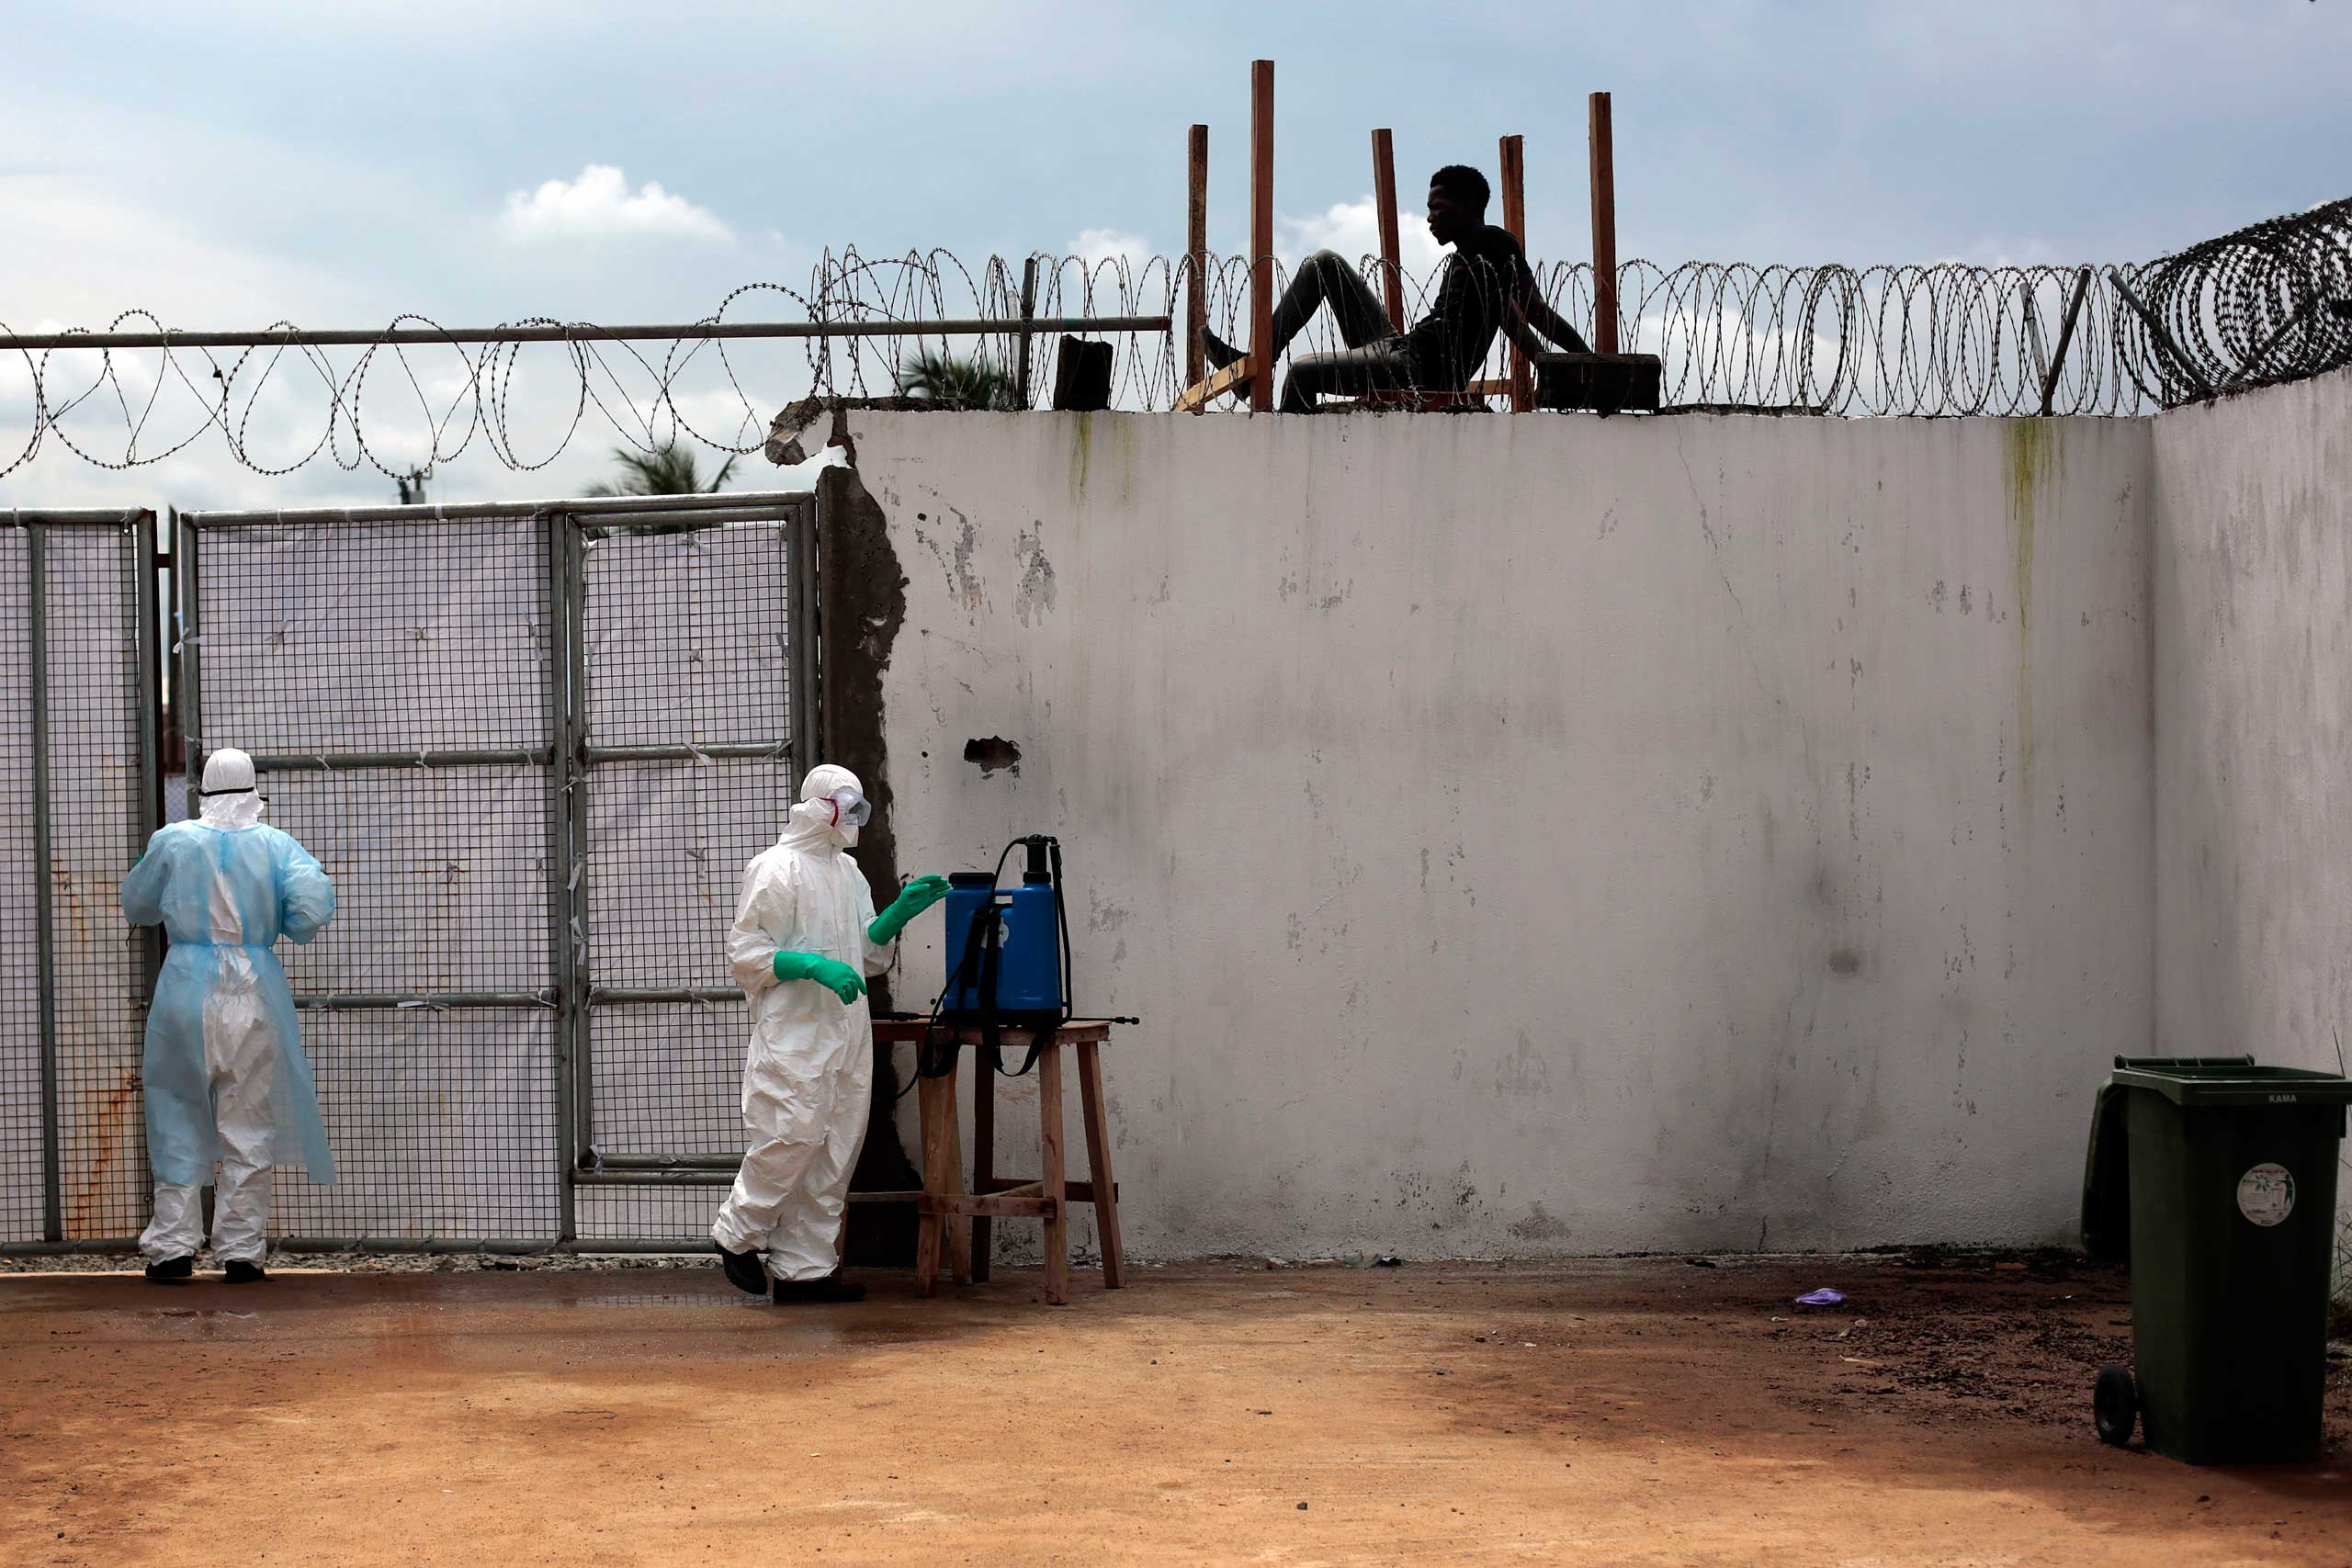 Sept. 26, 2014. Health workers stand outside the Island Clinic Ebola isolation and treatment center in Monrovia, Liberia.